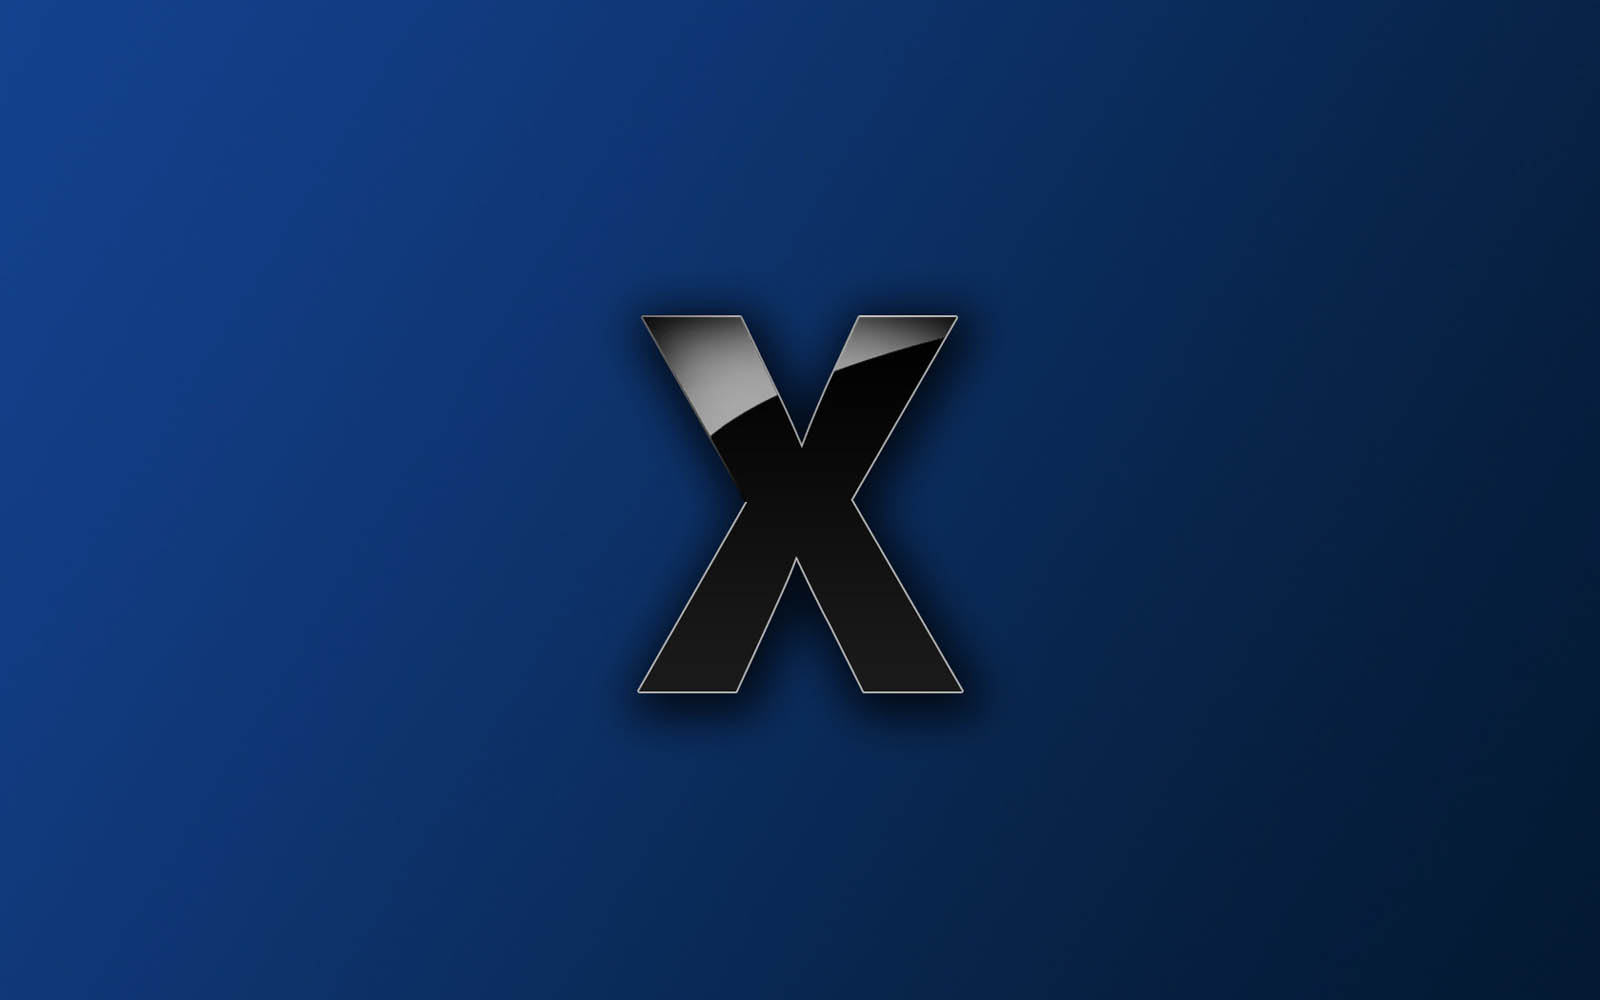 Tag Mac OS X Wallpapers Backgrounds Photos Pictures and Images 1600x1000